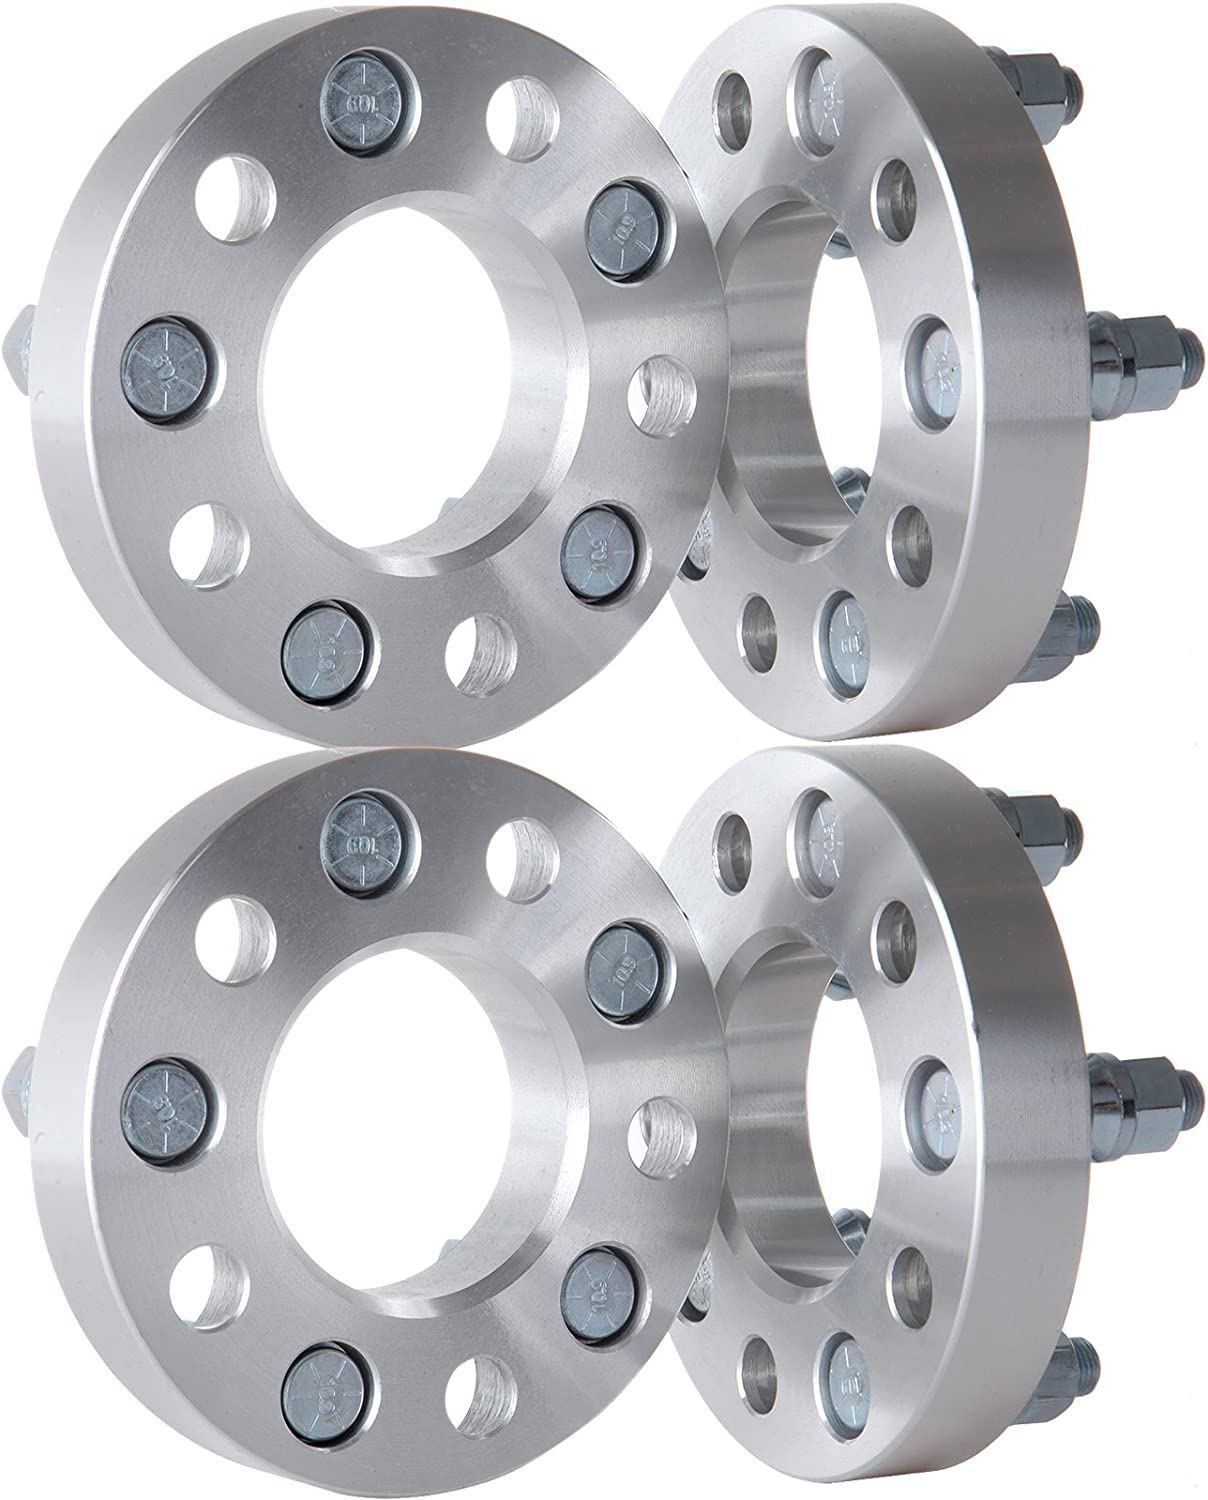 ECCPP 4X 1 5x4.5 to 5x4.5 Wheel Spacers Adapters 5 Lug 70.5mm 1//2 x20 Fit for Ford Mustang Crown Victoria Ranger Lincoln Town Car Mazda B3000 B4000 with 1//2 Studs